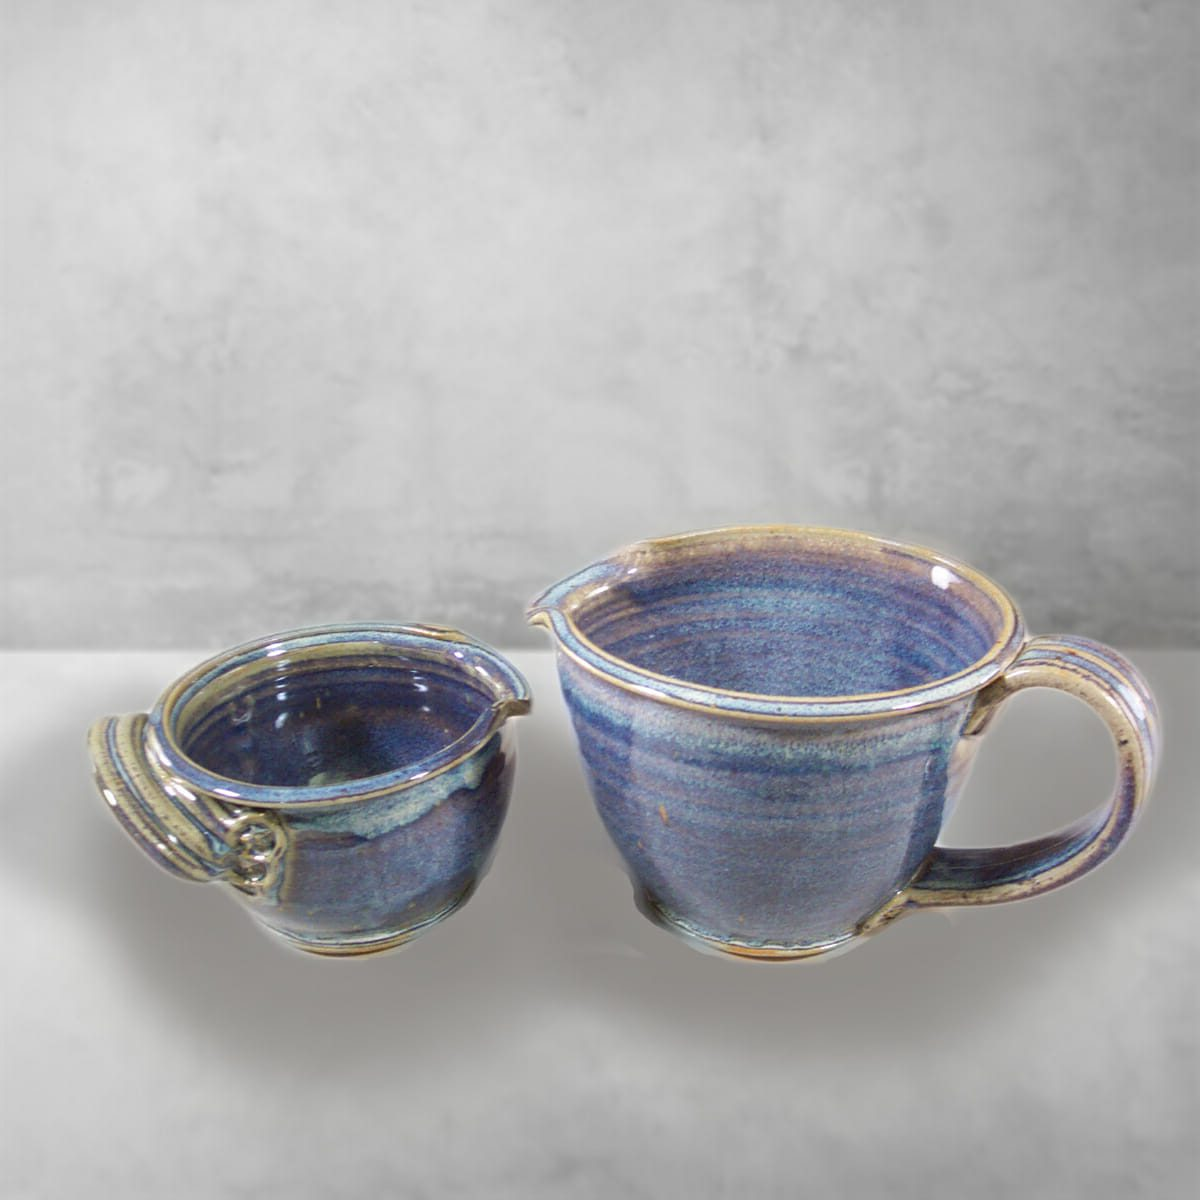 Spouted Bowl with Handle, Small and Large Sizes, Smooth Design in Rutile Blue Glaze